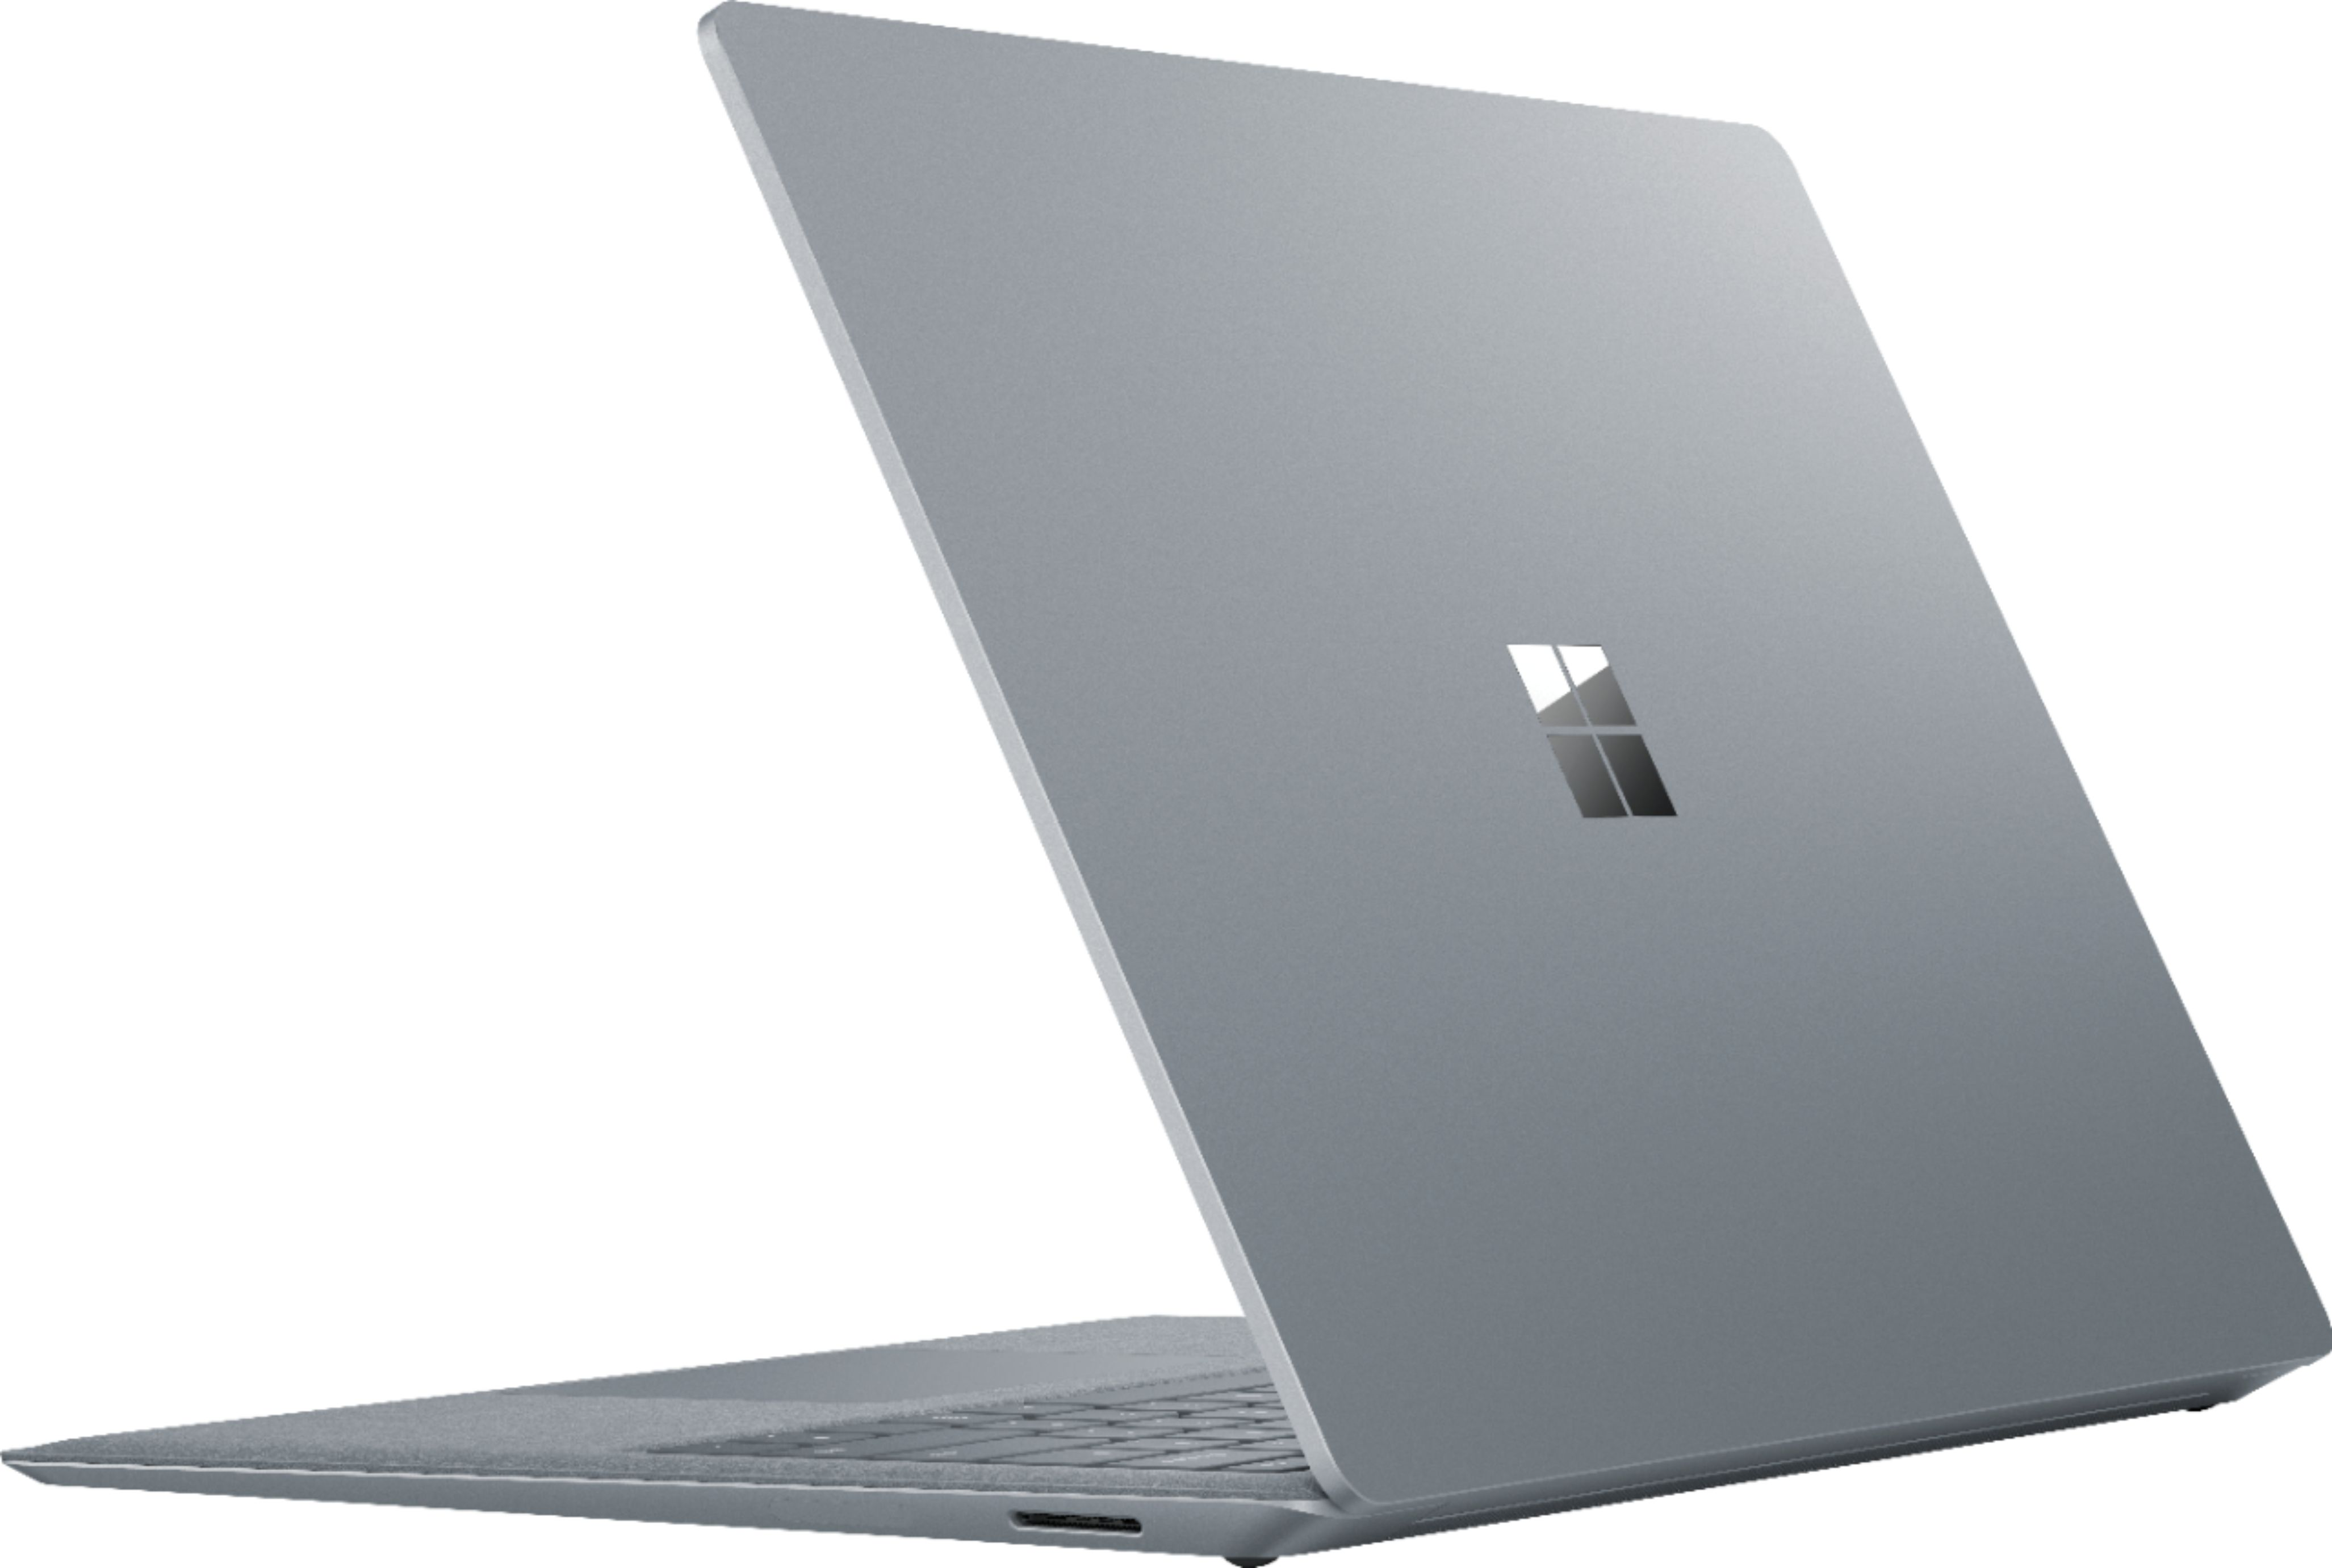 """Alt View Zoom 12. Microsoft - Geek Squad Certified Refurbished Surface Laptop 2 - 13.5"""" Touch Screen - Intel Core i5 - 8GB - 128GB SSD - Platinum."""